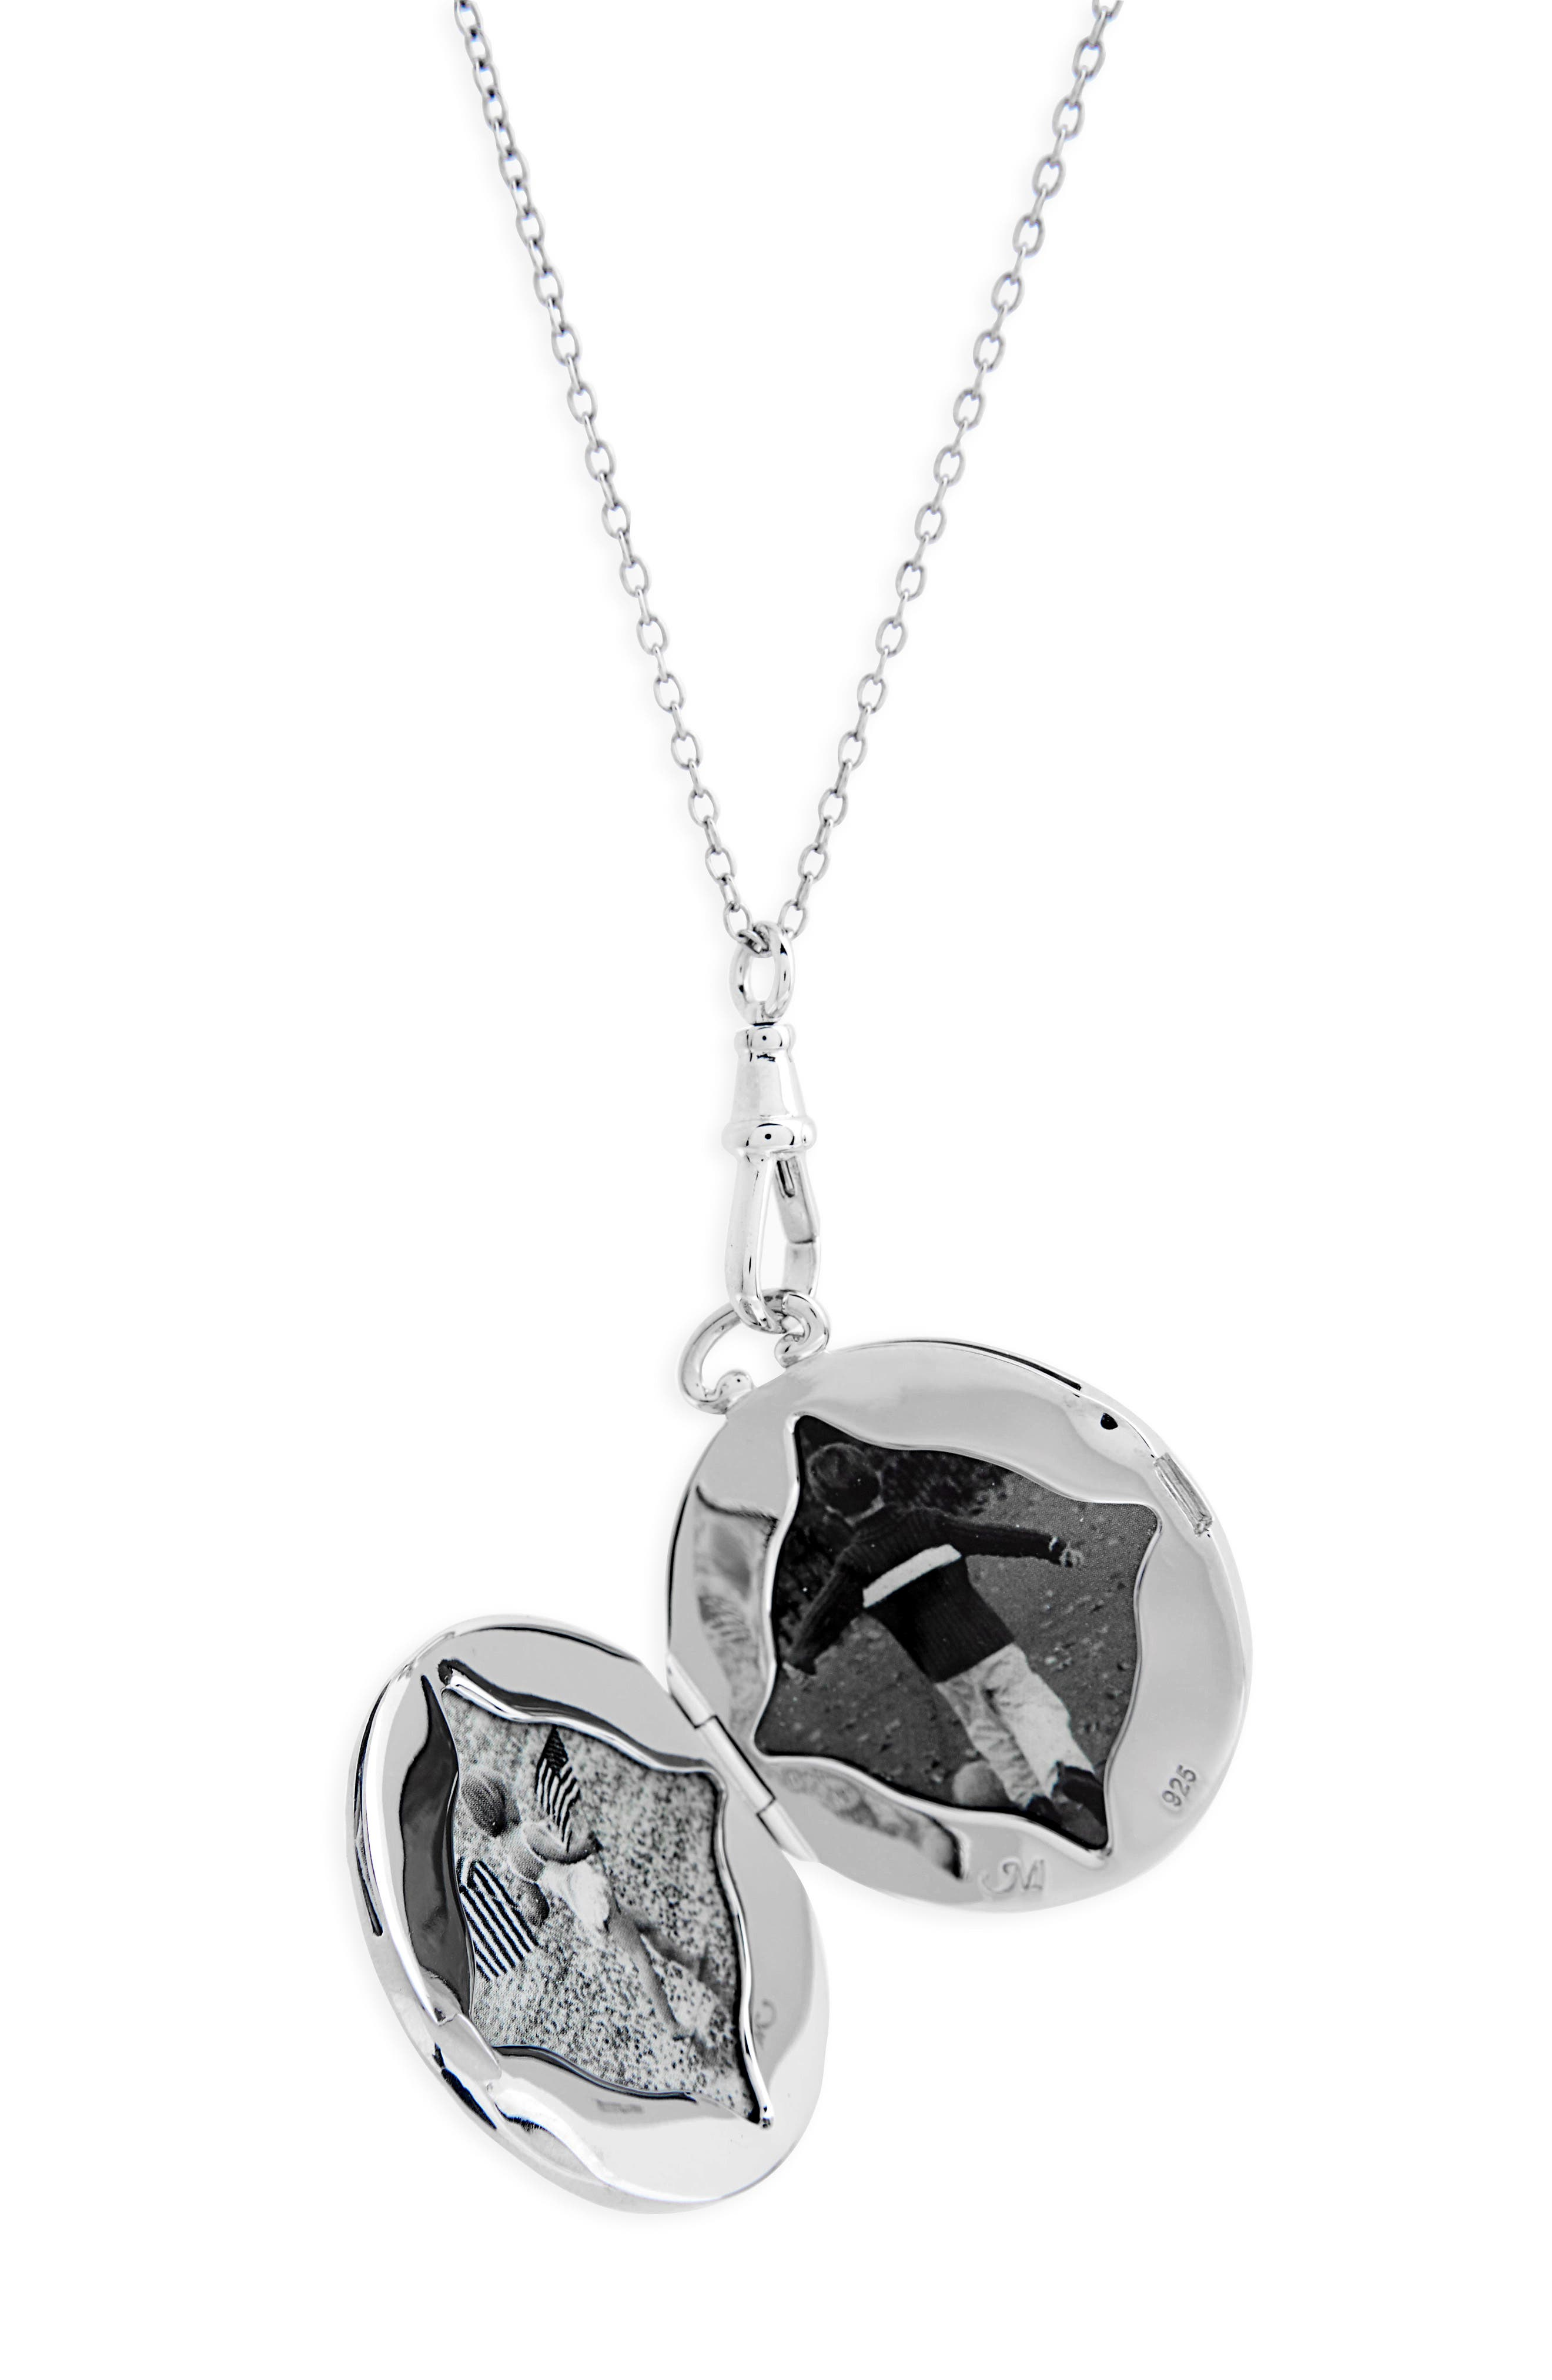 Swirling Vine Round Locket Necklace,                             Alternate thumbnail 3, color,                             STERLING SILVER